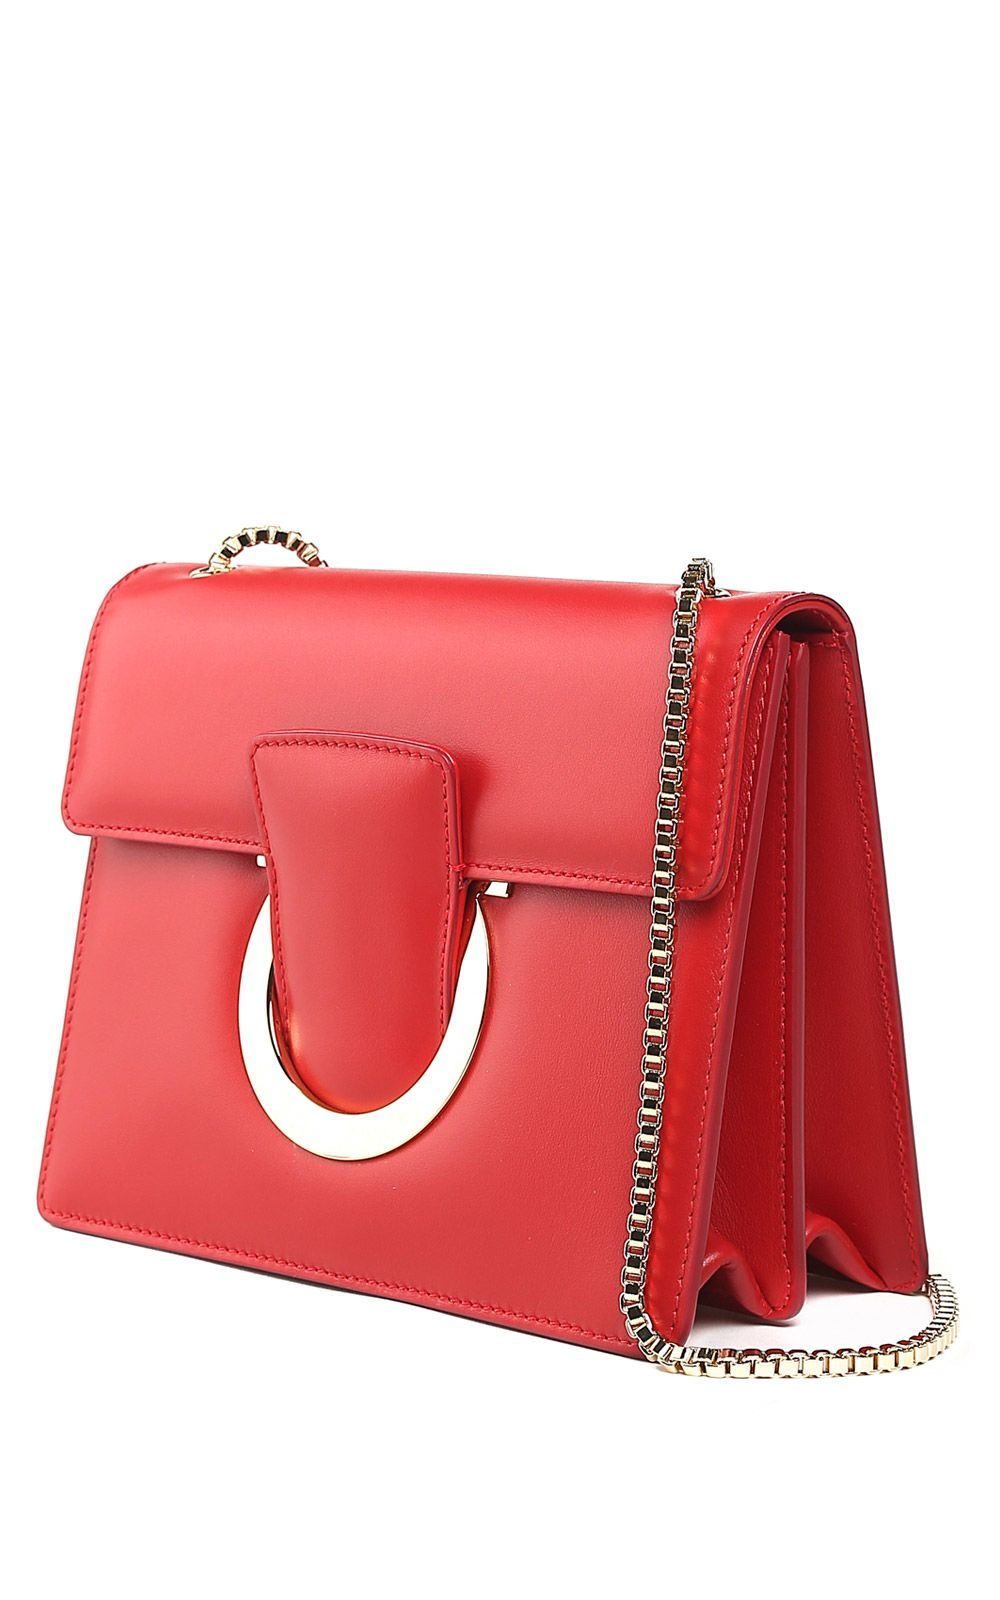 b1ae6bdc57ac SALVATORE FERRAGAMO THALIA LEATHER SHOULDER BAG.  salvatoreferragamo  bags  shoulder  bags  leather  lining